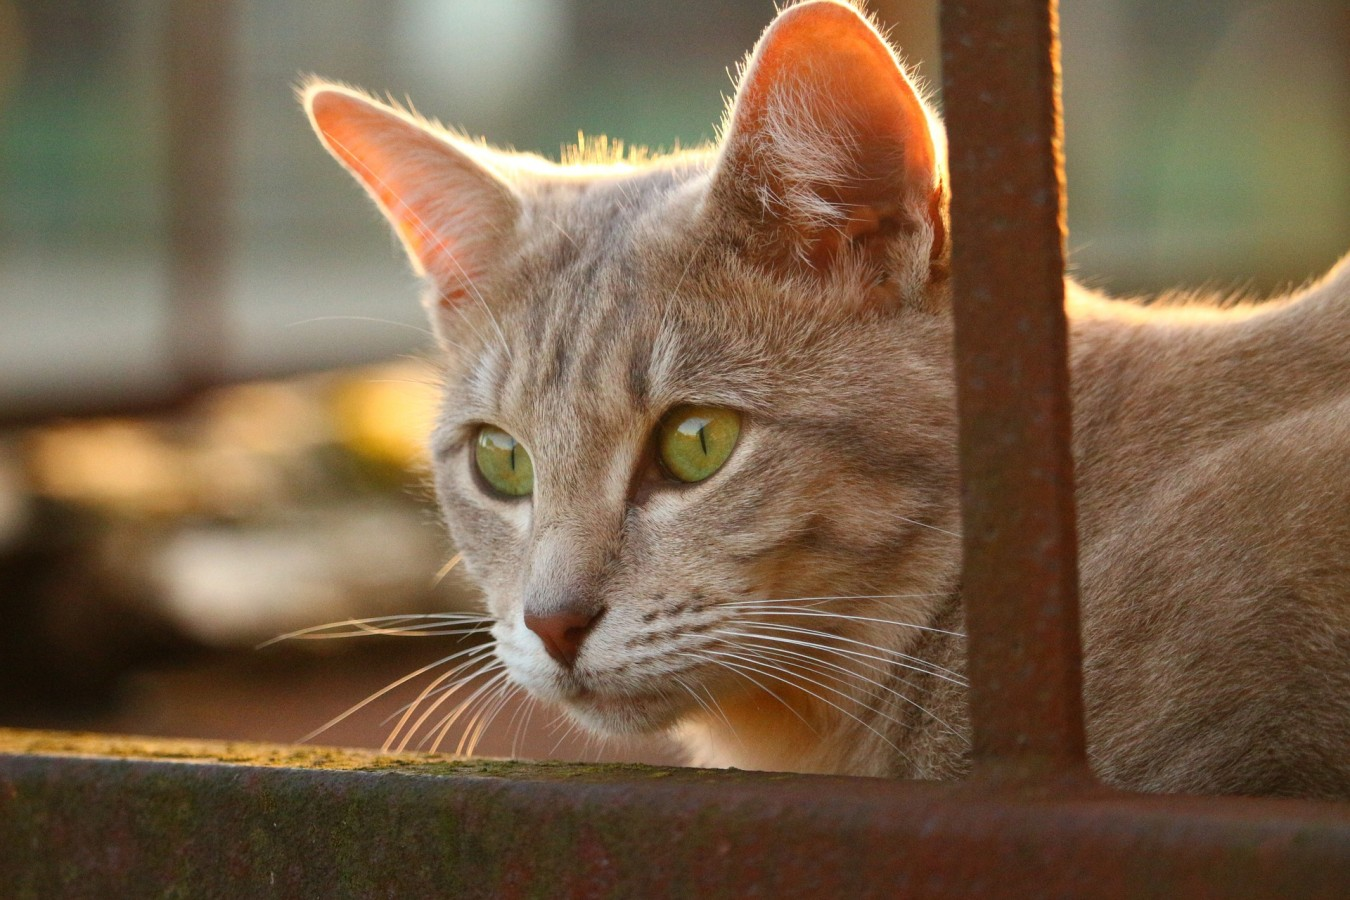 The ageing process can change our feline's sleeping habits